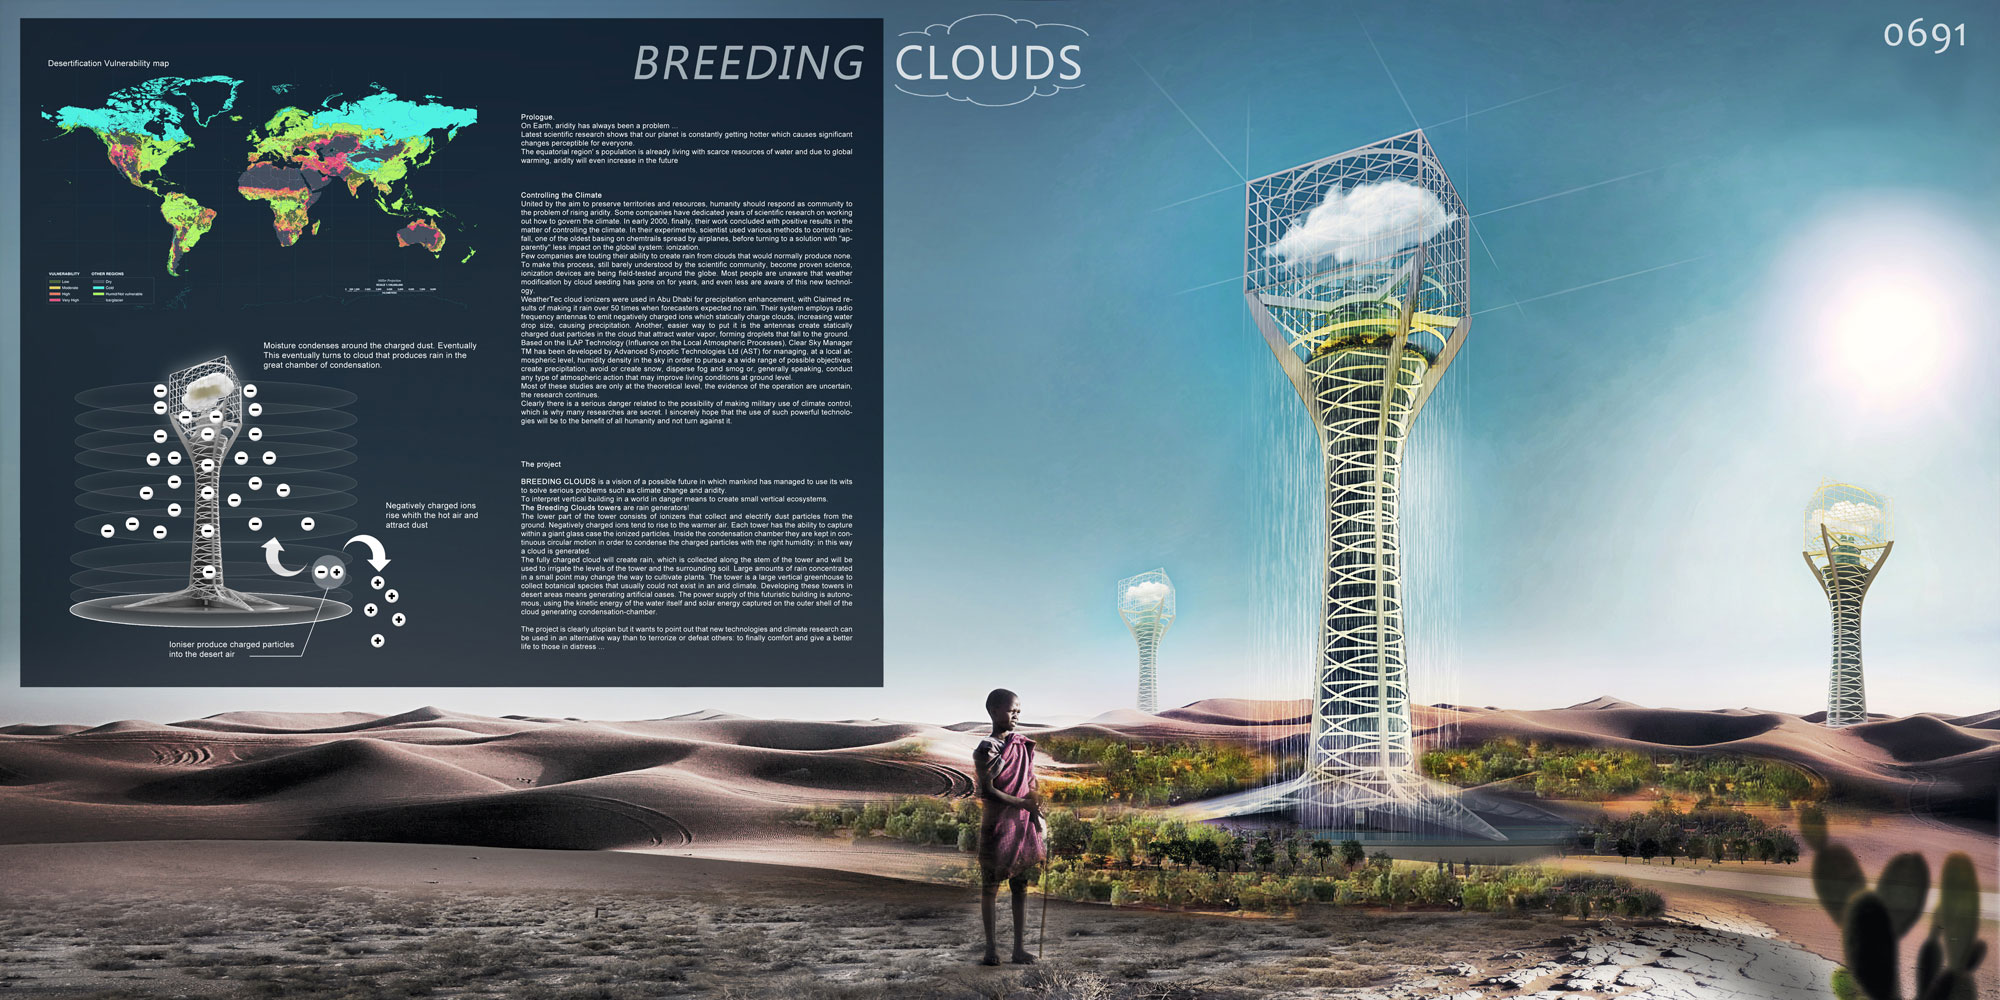 Breeding clouds. Skyscraper